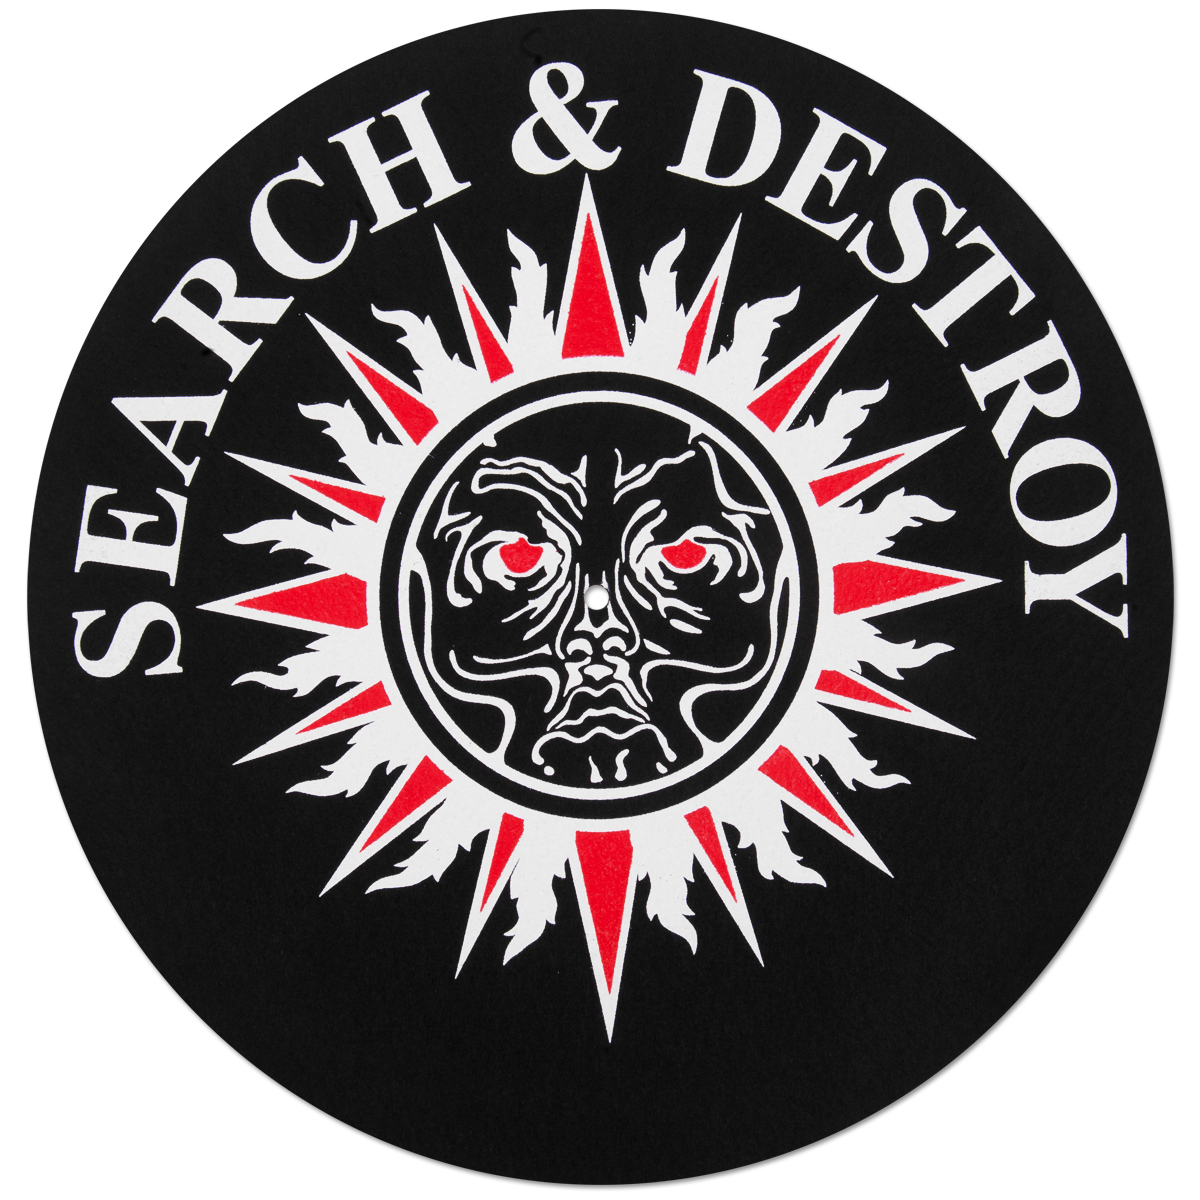 Henry Rollins - Search & Destroy Slipmat